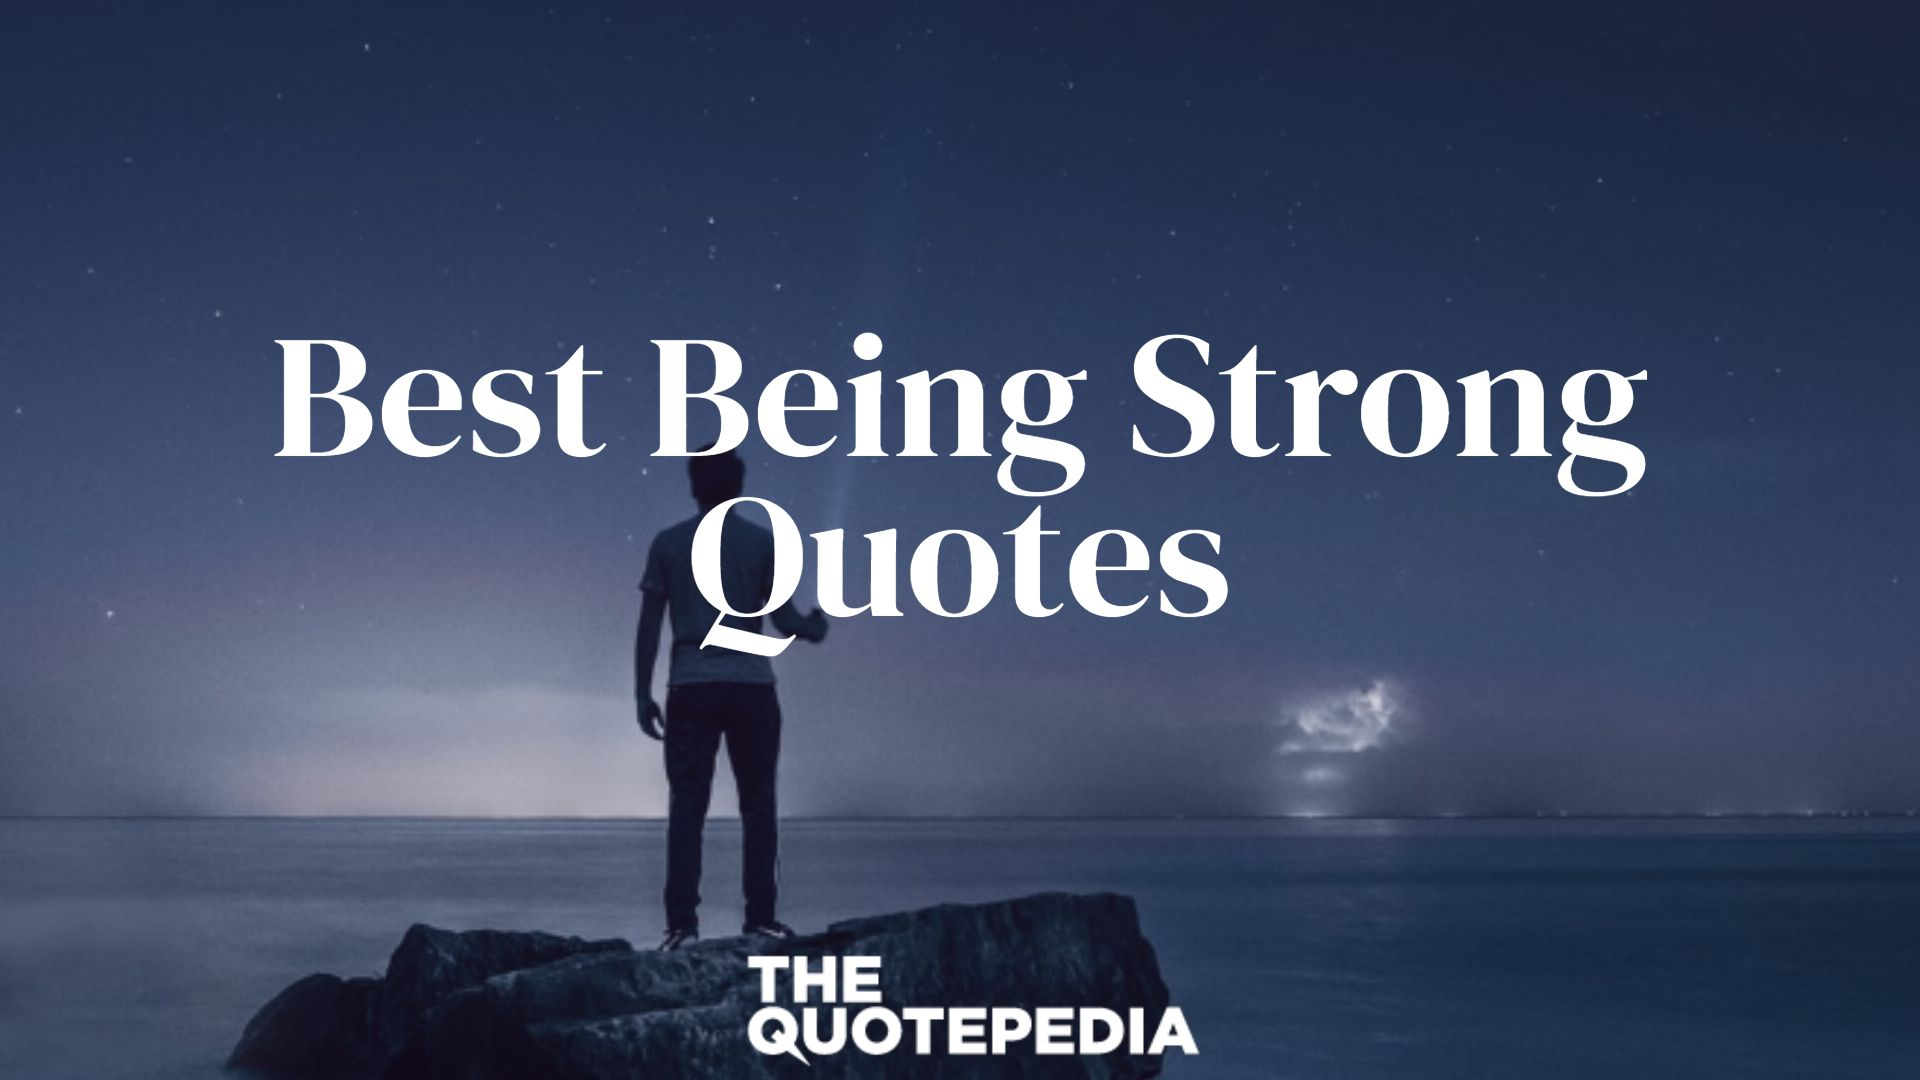 Best Being Strong Quotes